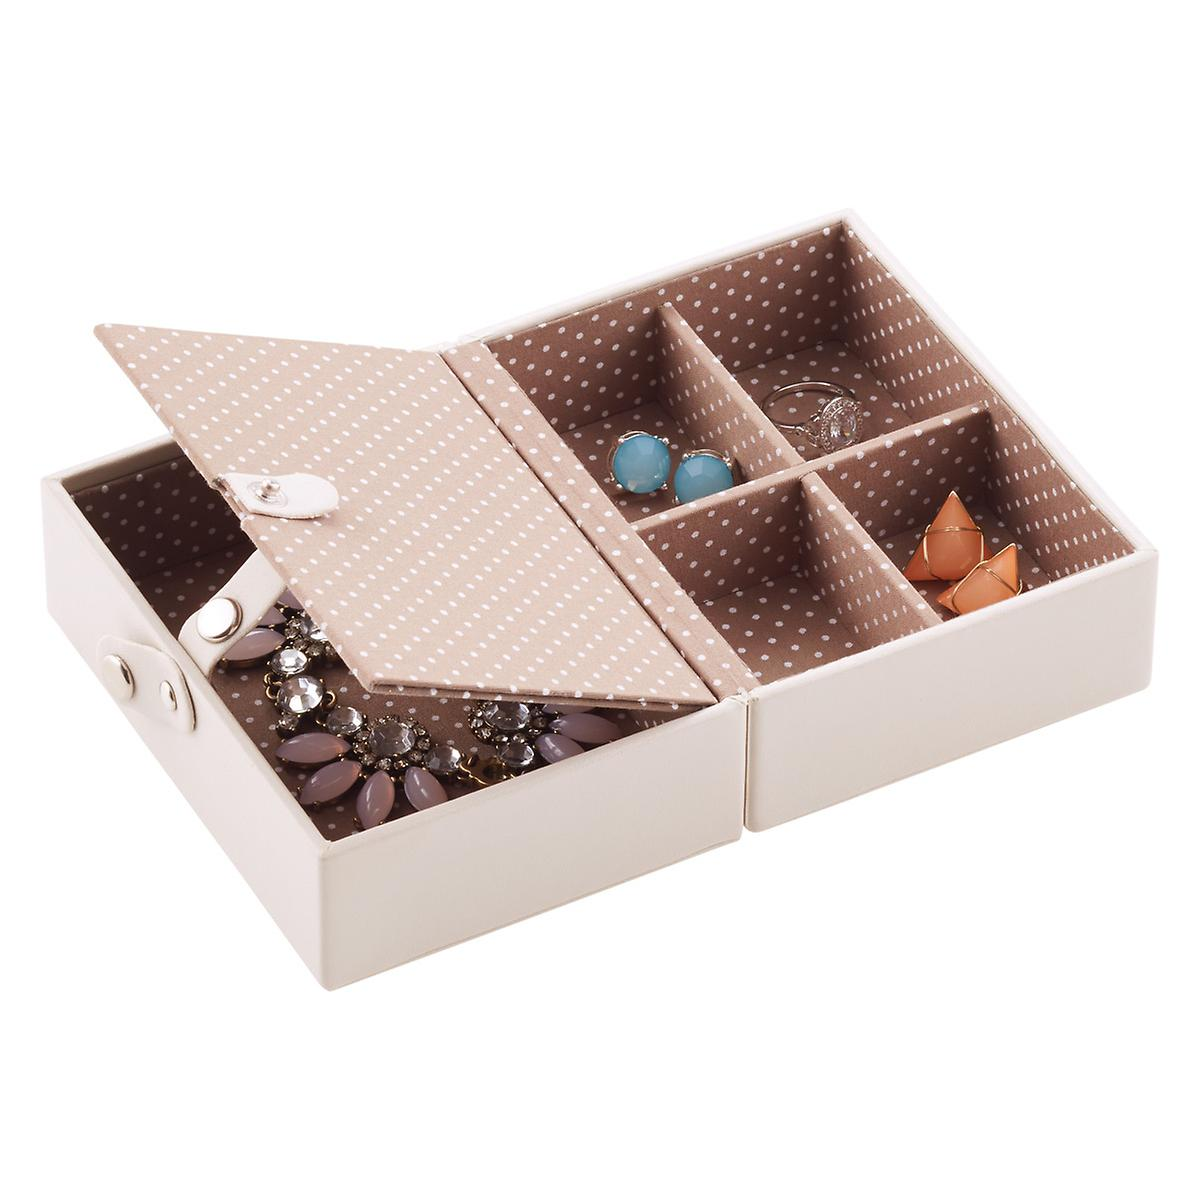 vanilla folding travel jewelry storage tray the